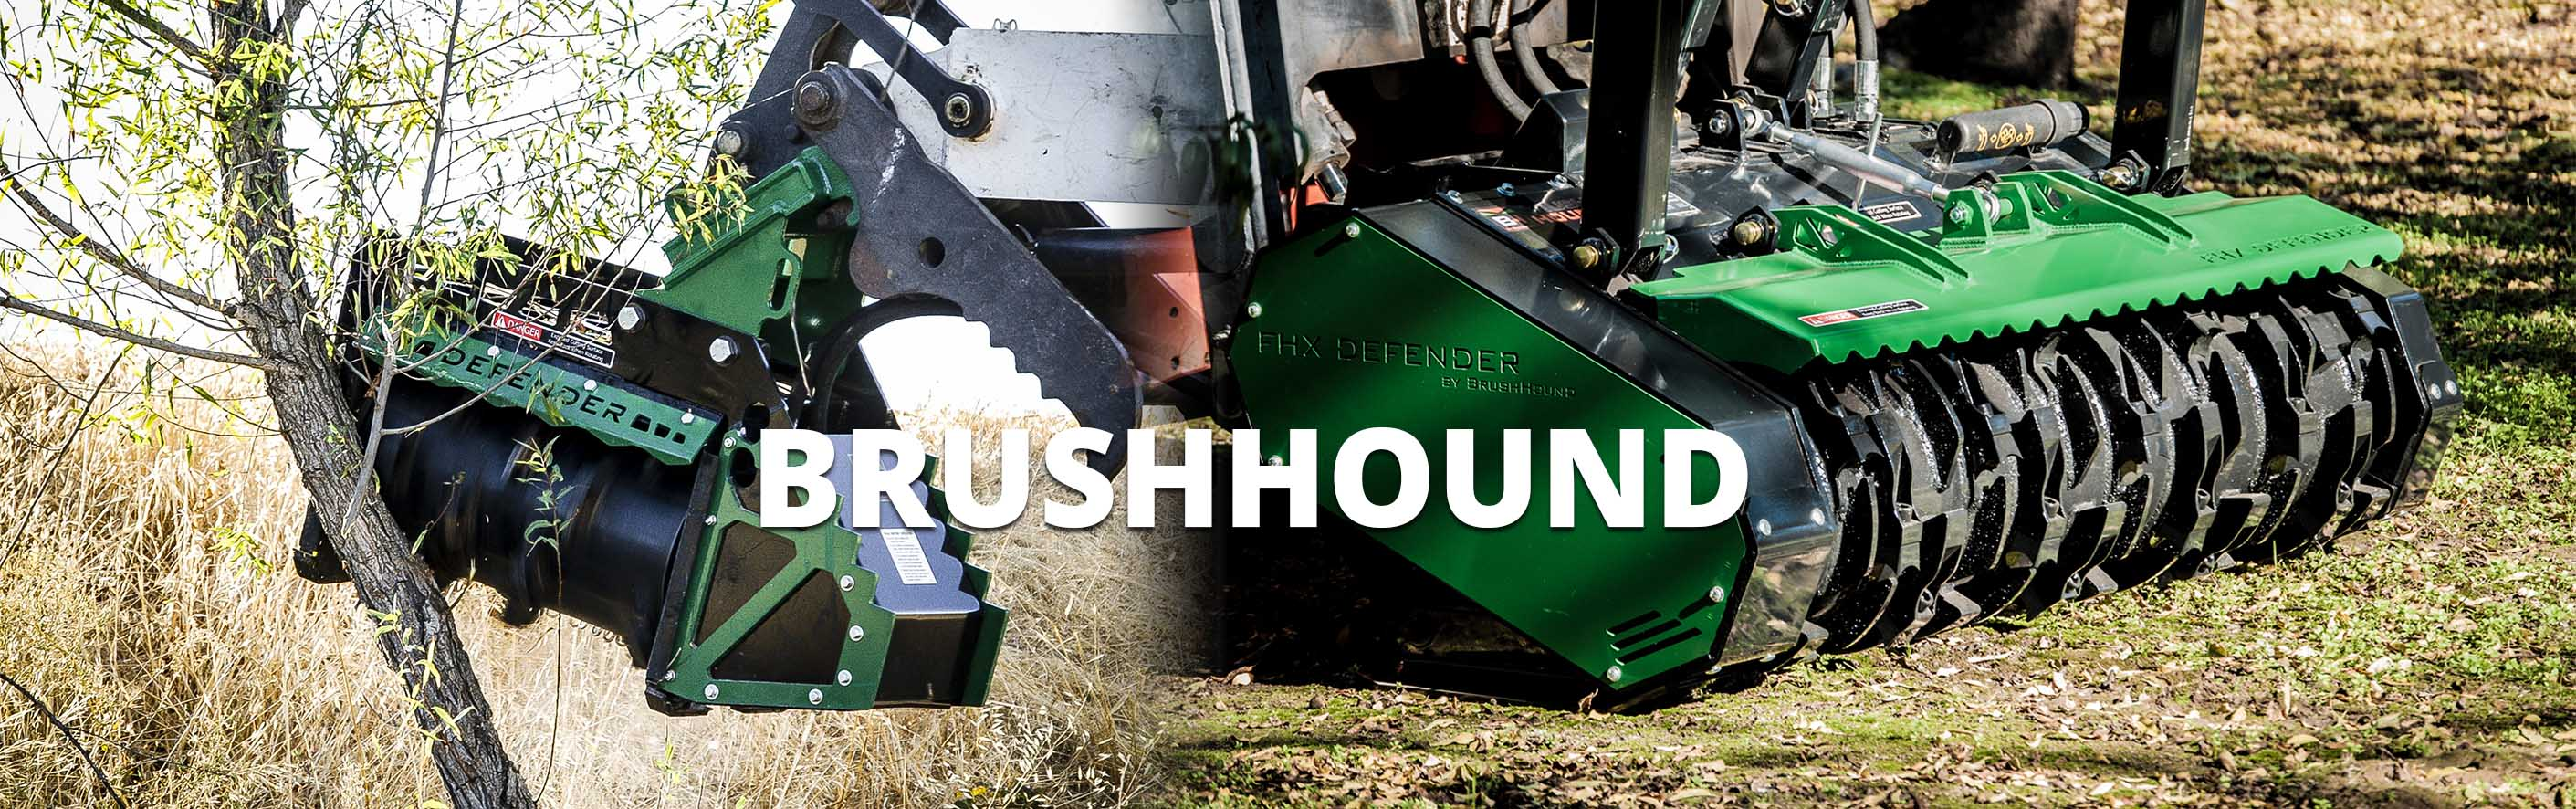 brushhound-skid-steer-and-excavator-attachments-banner.jpg